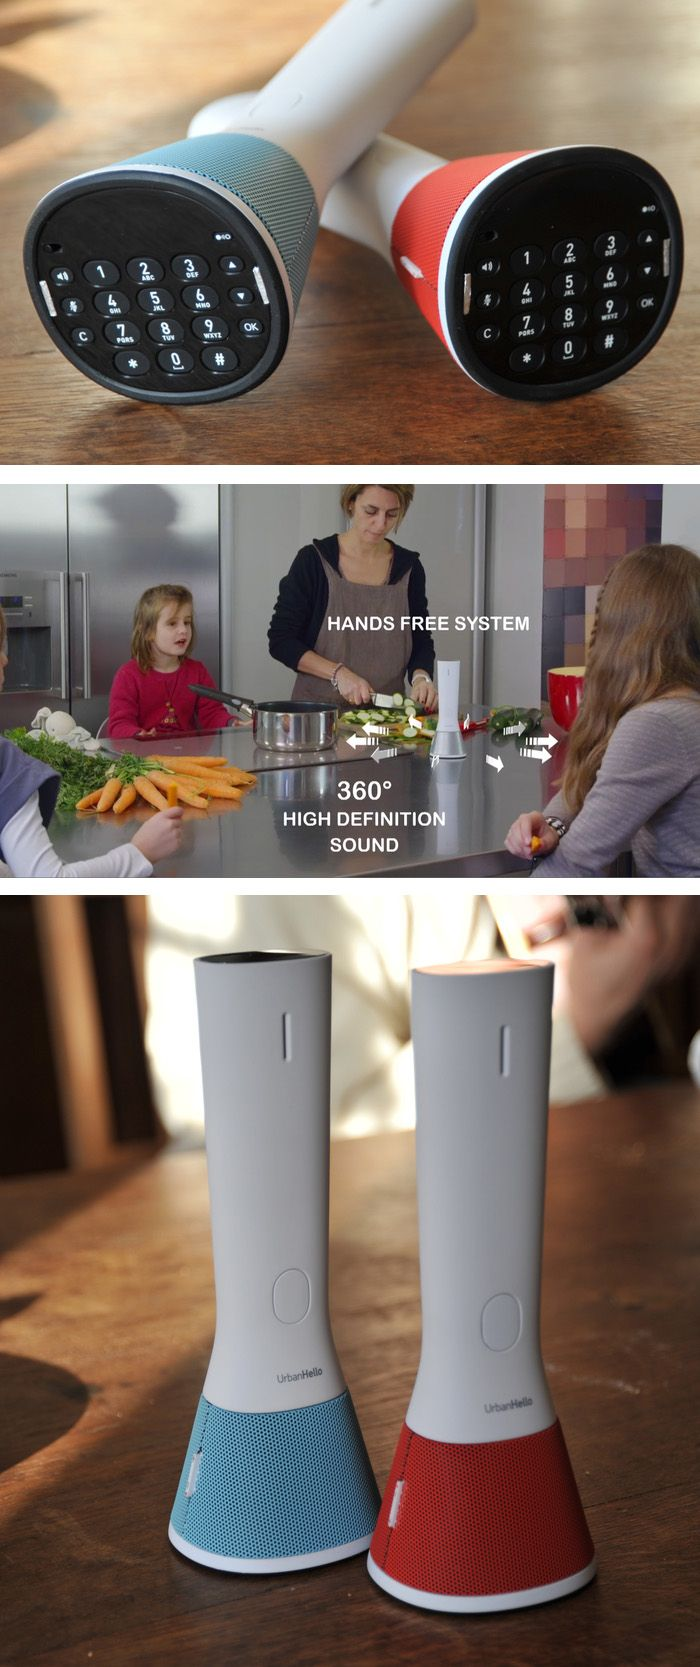 """If you still have a landline, you might want to check out """"The Home Phone."""" Its sleek and hands-free design makes it stand out."""